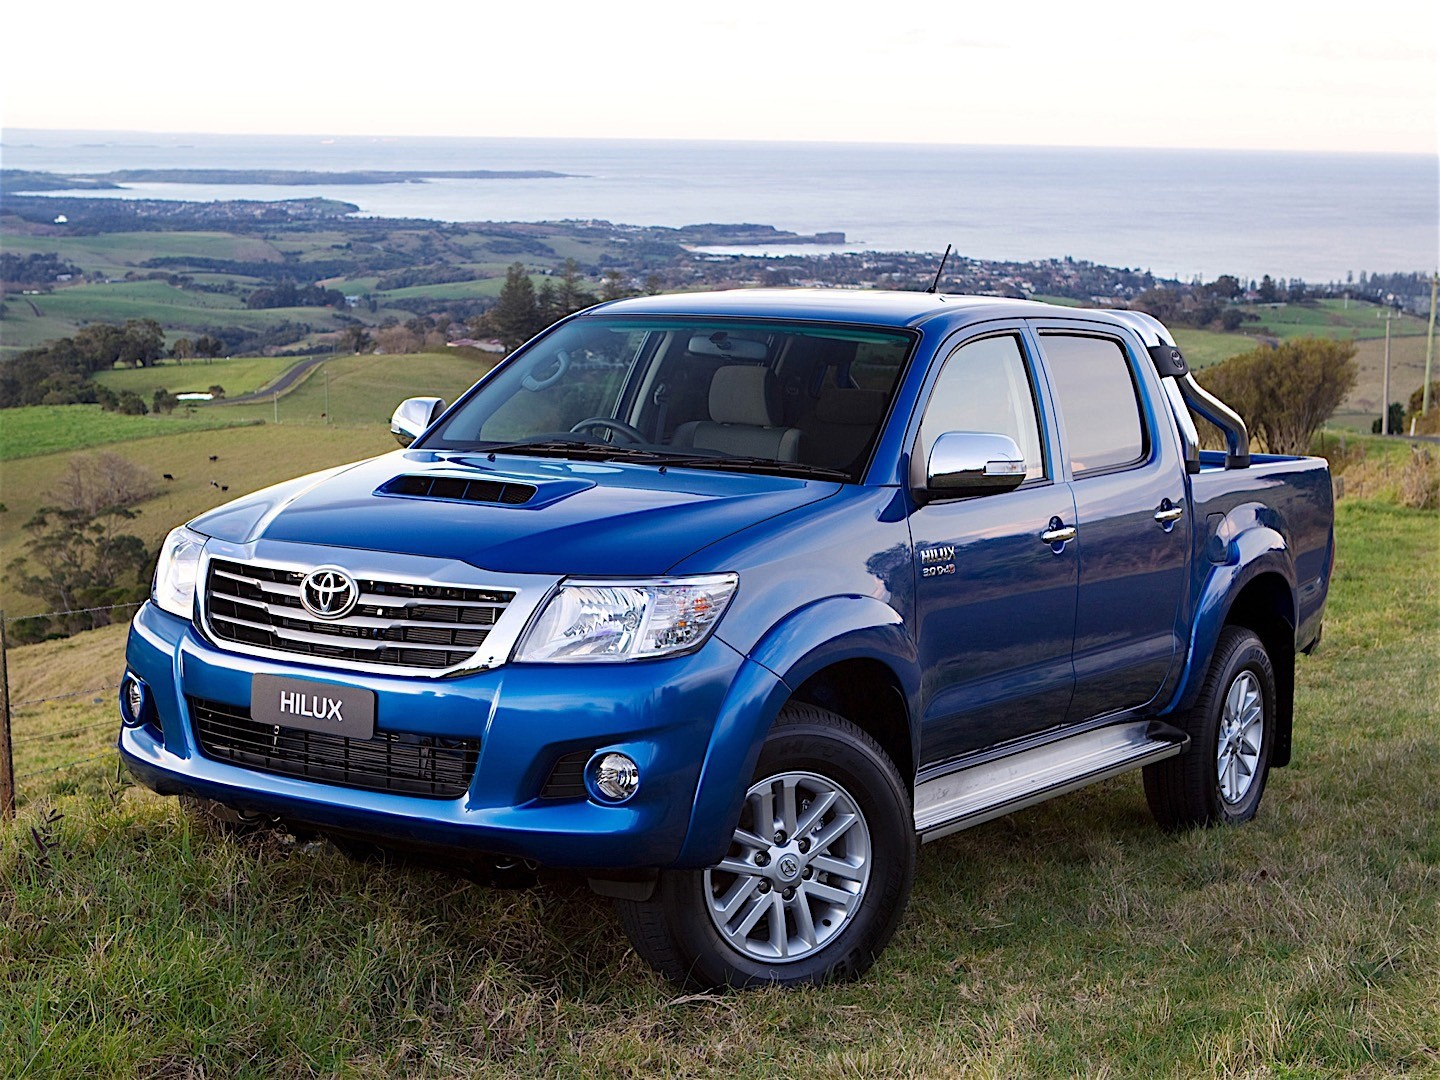 Toyota Hilux Double Cab - 2011  2012  2013  2014  2015